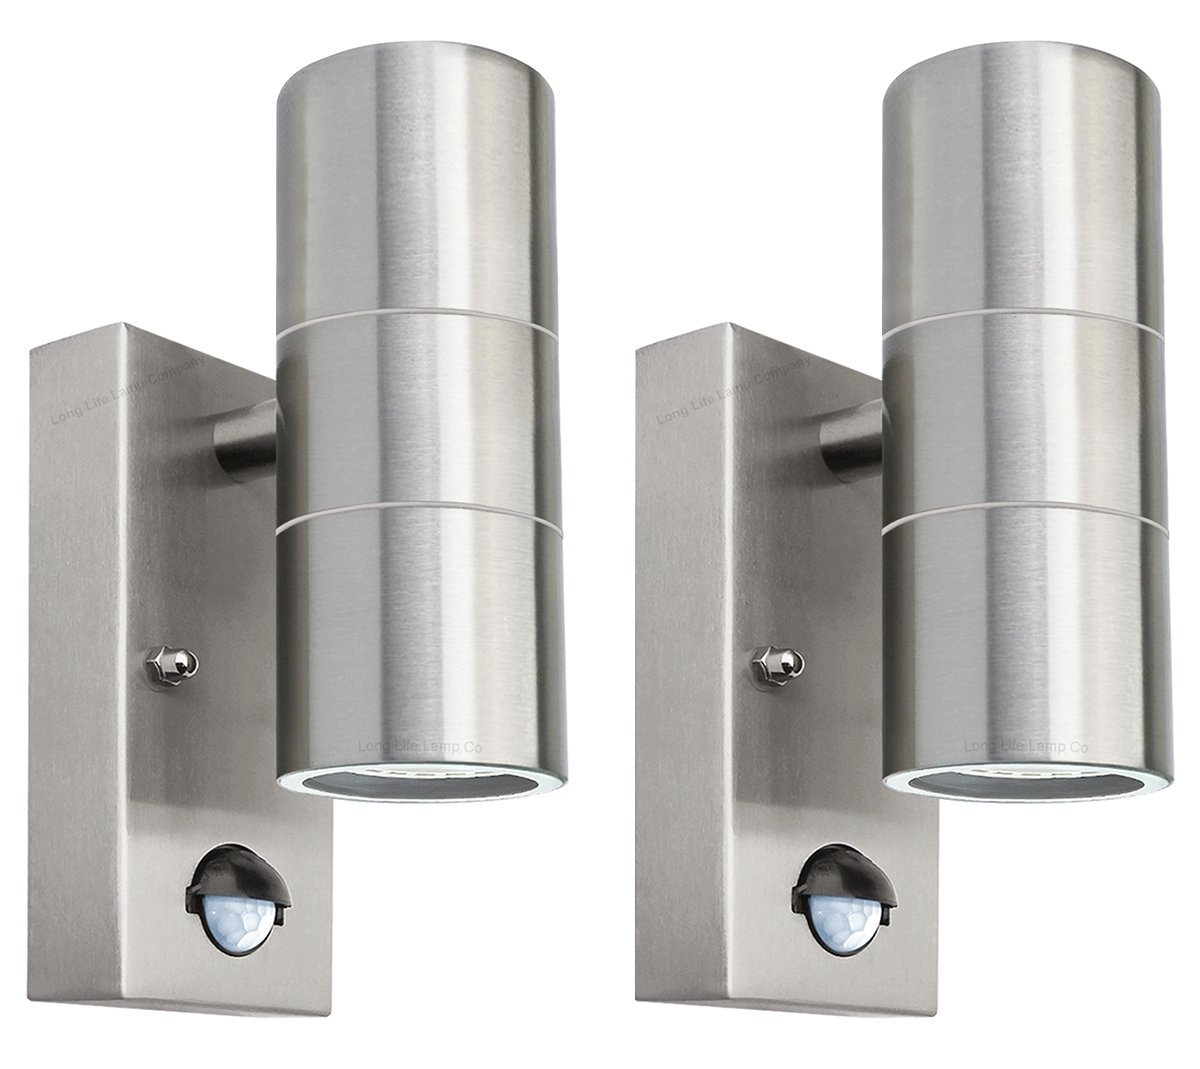 2 X PIR Stainless Steel Double Outdoor Wall Light With Movement Sensor IP44 Up/Down Outdoor Wall Light ZLC08DSEN2P Long Life Lamp Company